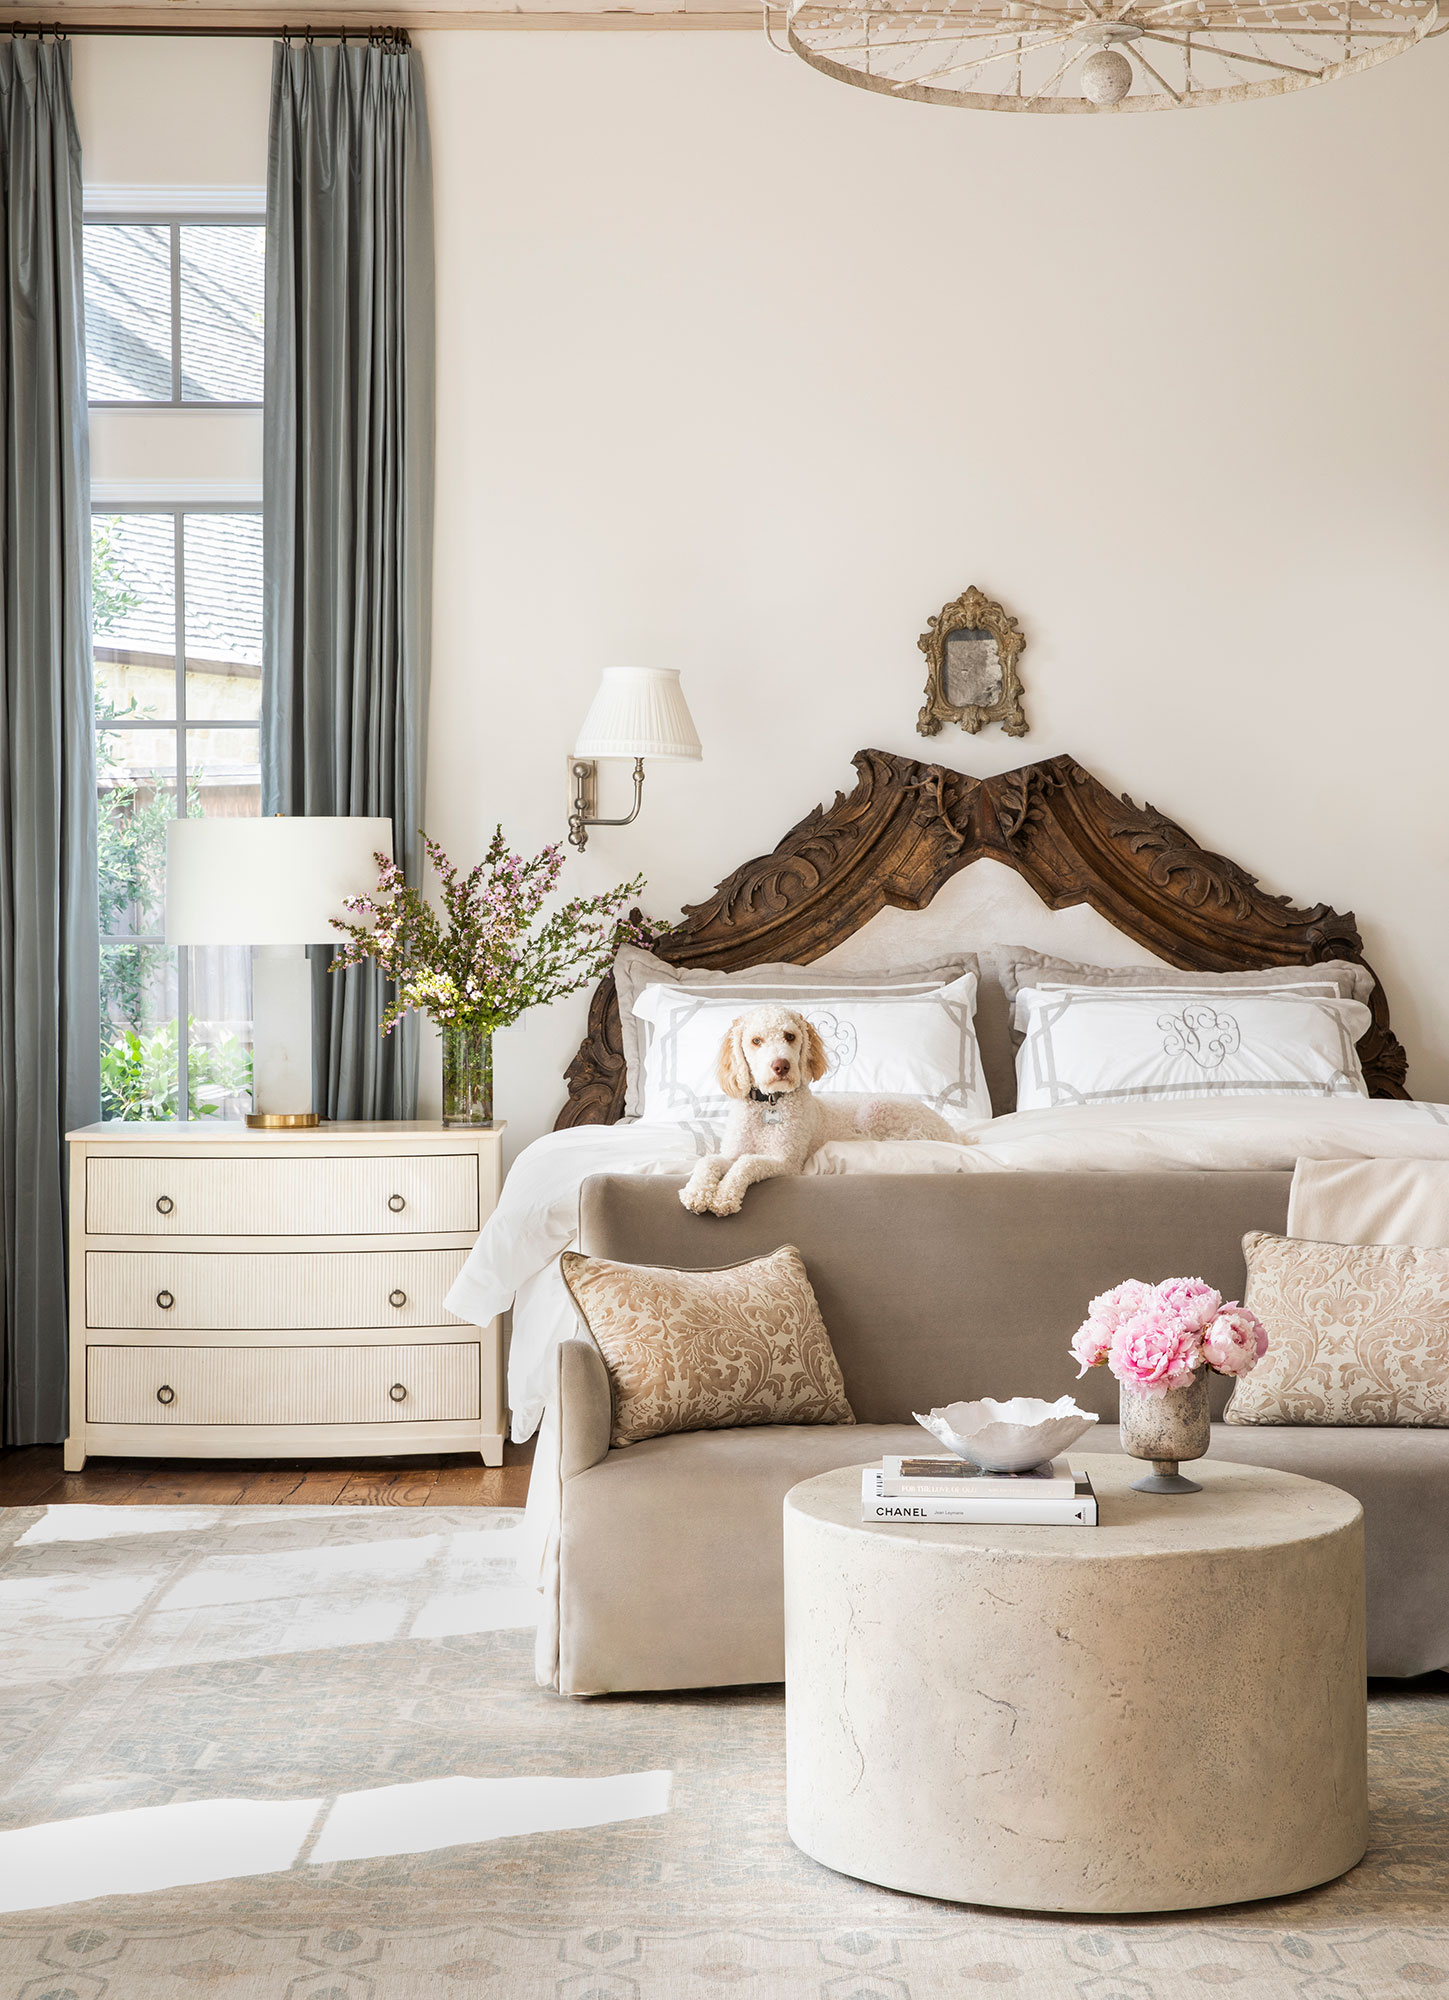 Bedroom with dog Interiors Photography - Julie Soefer Photography